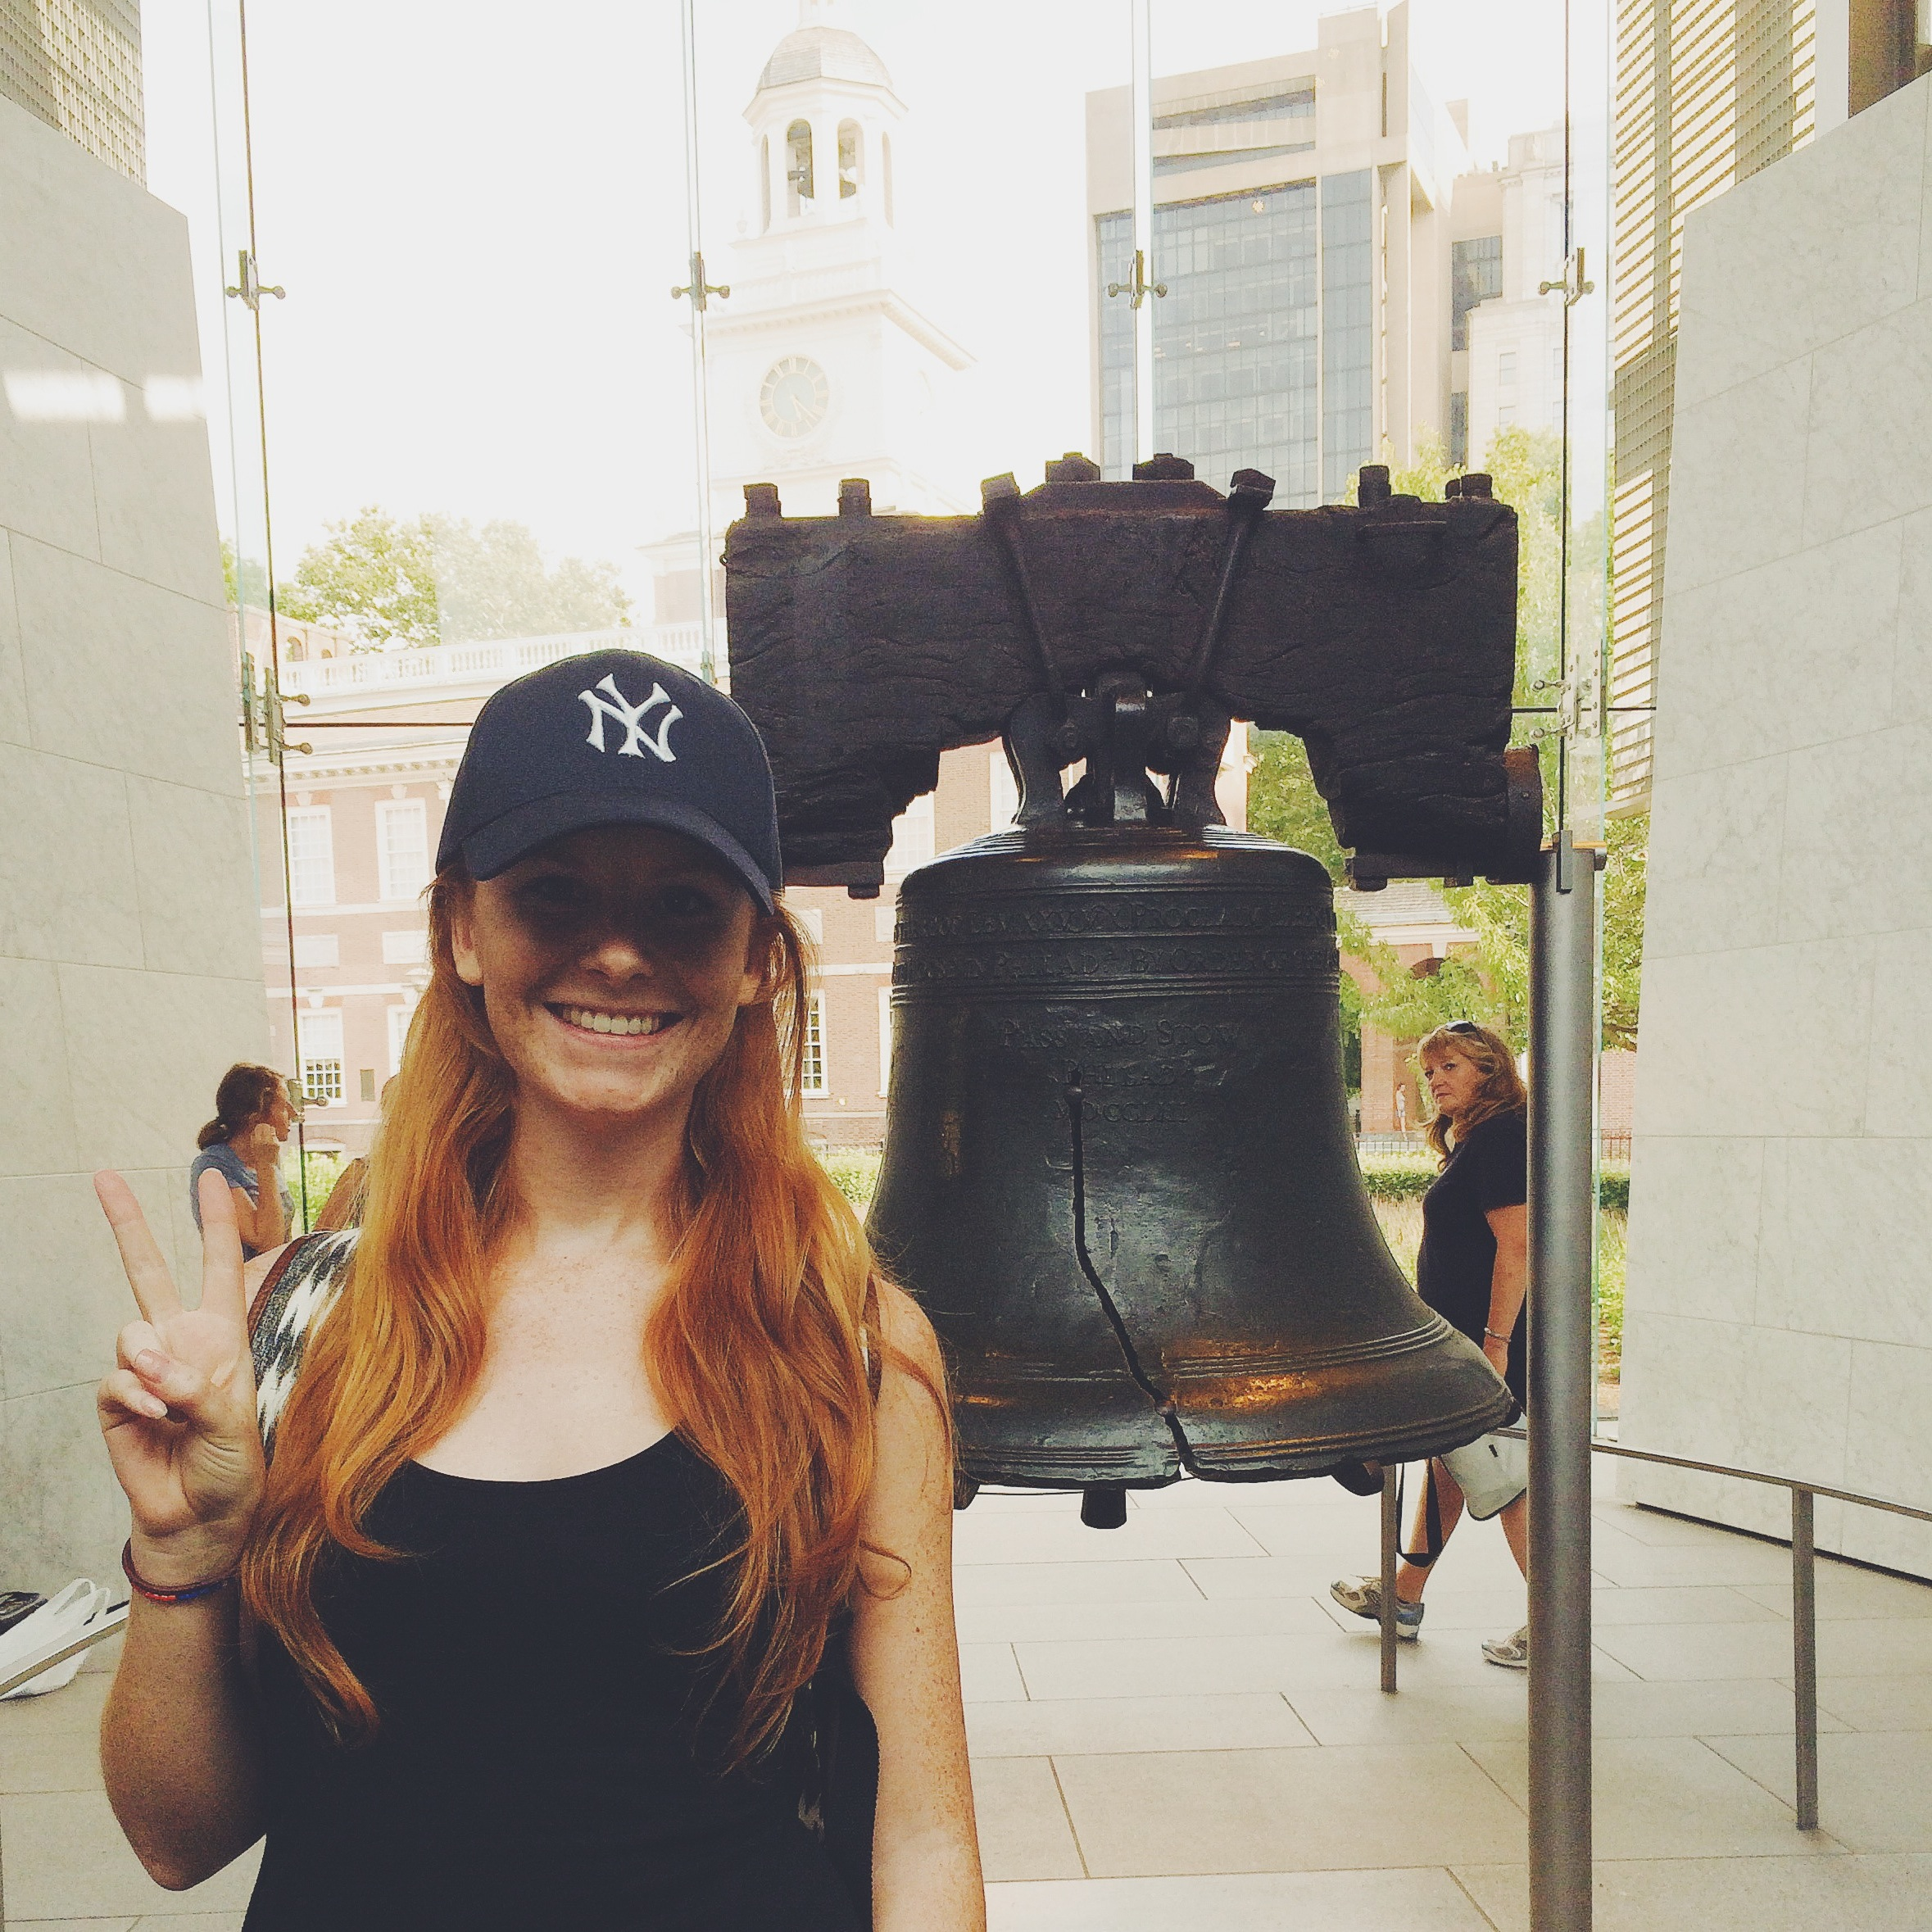 Liberty Bell in Philadelphia, Pennsylvannia, USA